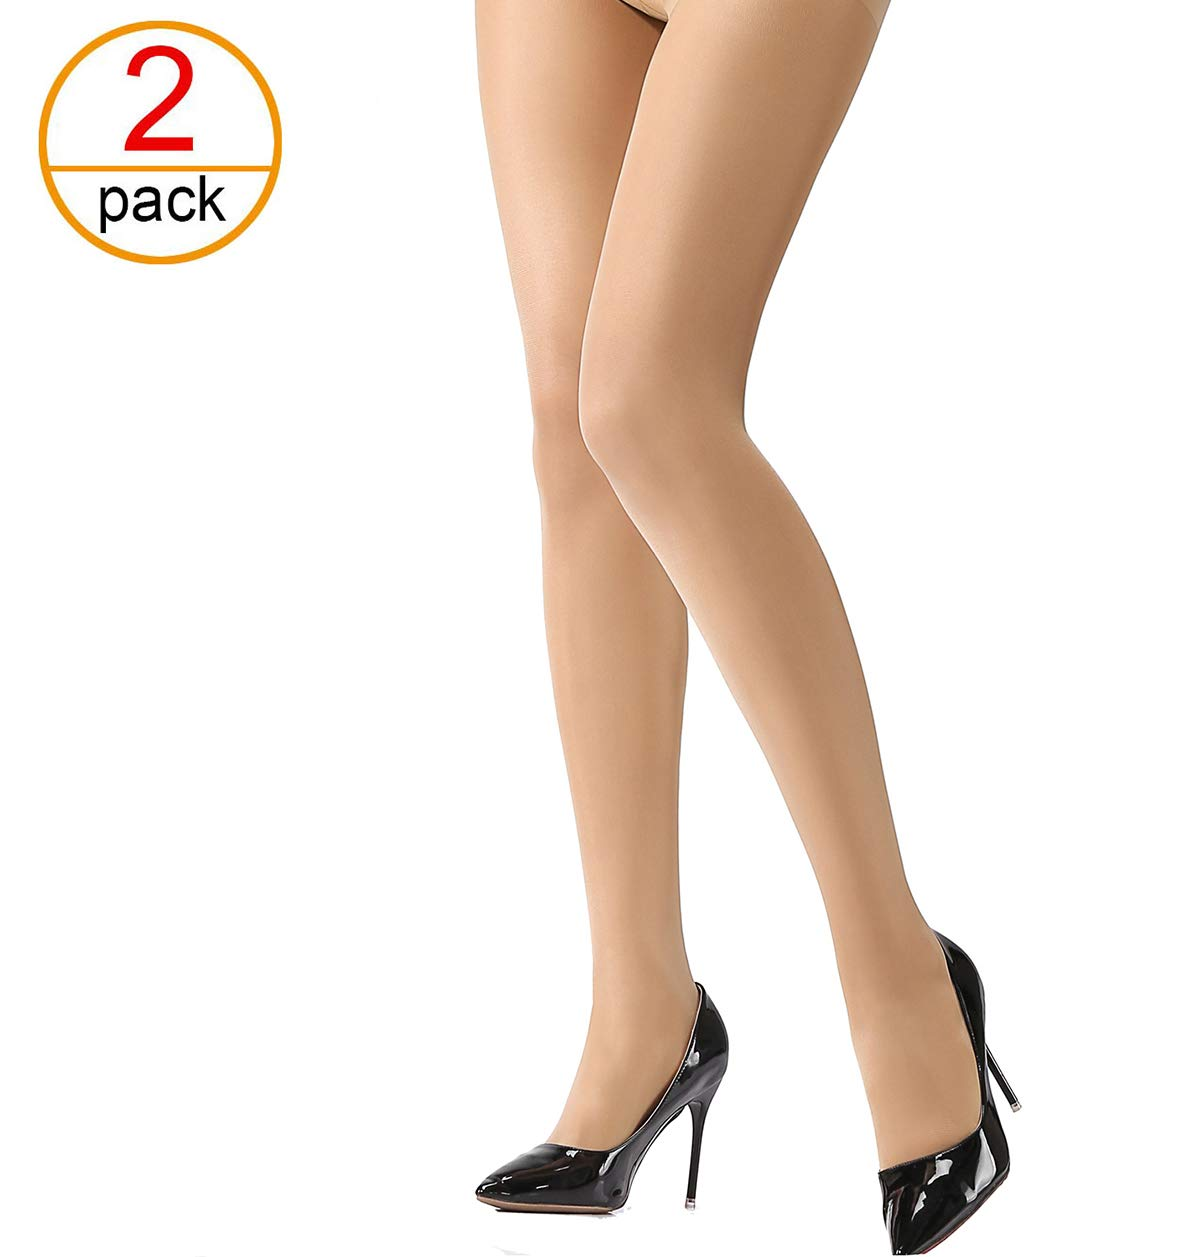 HONENNA Women's Semi Sheer Opaque Tights Reinforced Toe Panty Hose Control Top Hosiery (B+, Nude)